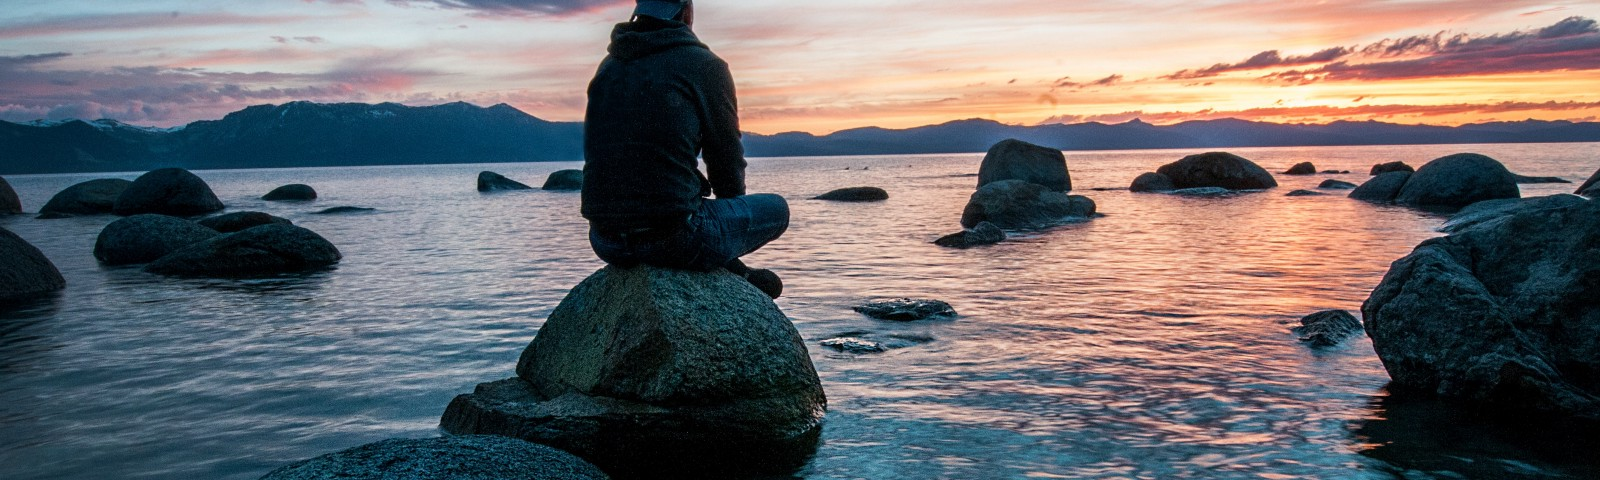 Guy sitting on a rock in an ocean cove looking out over the sun setting.